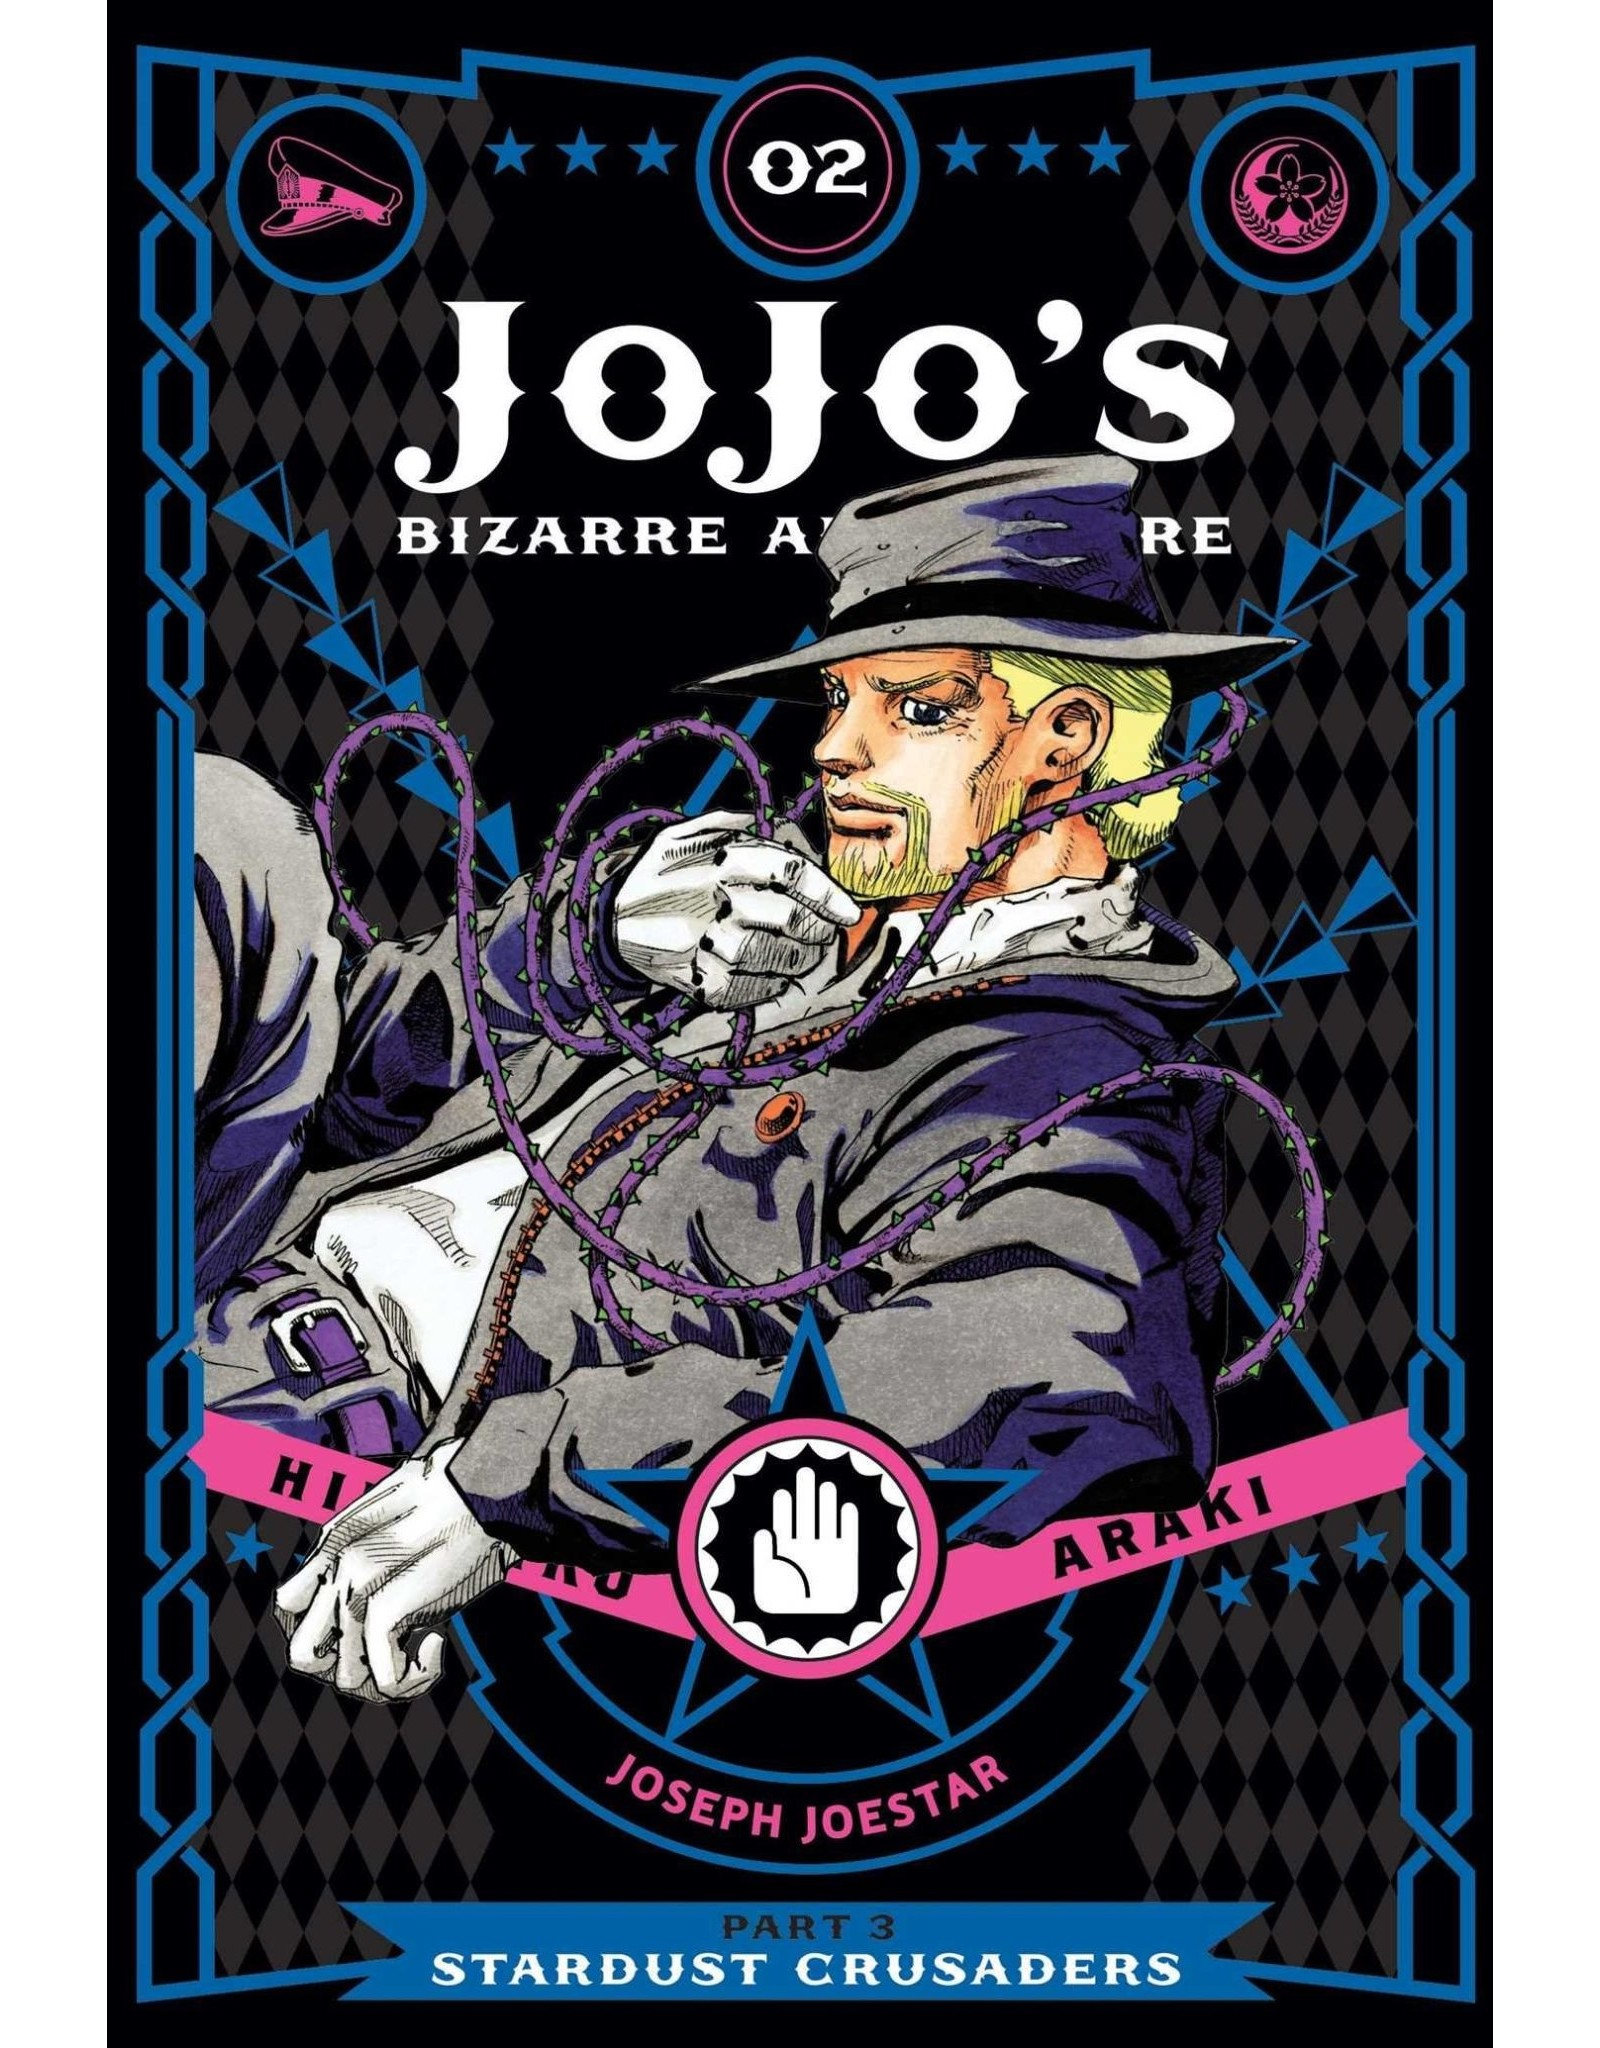 Jojo's Bizarre Adventure - Part 3: Stardust Crusaders - Volume 2 - Hardcover (English Version)